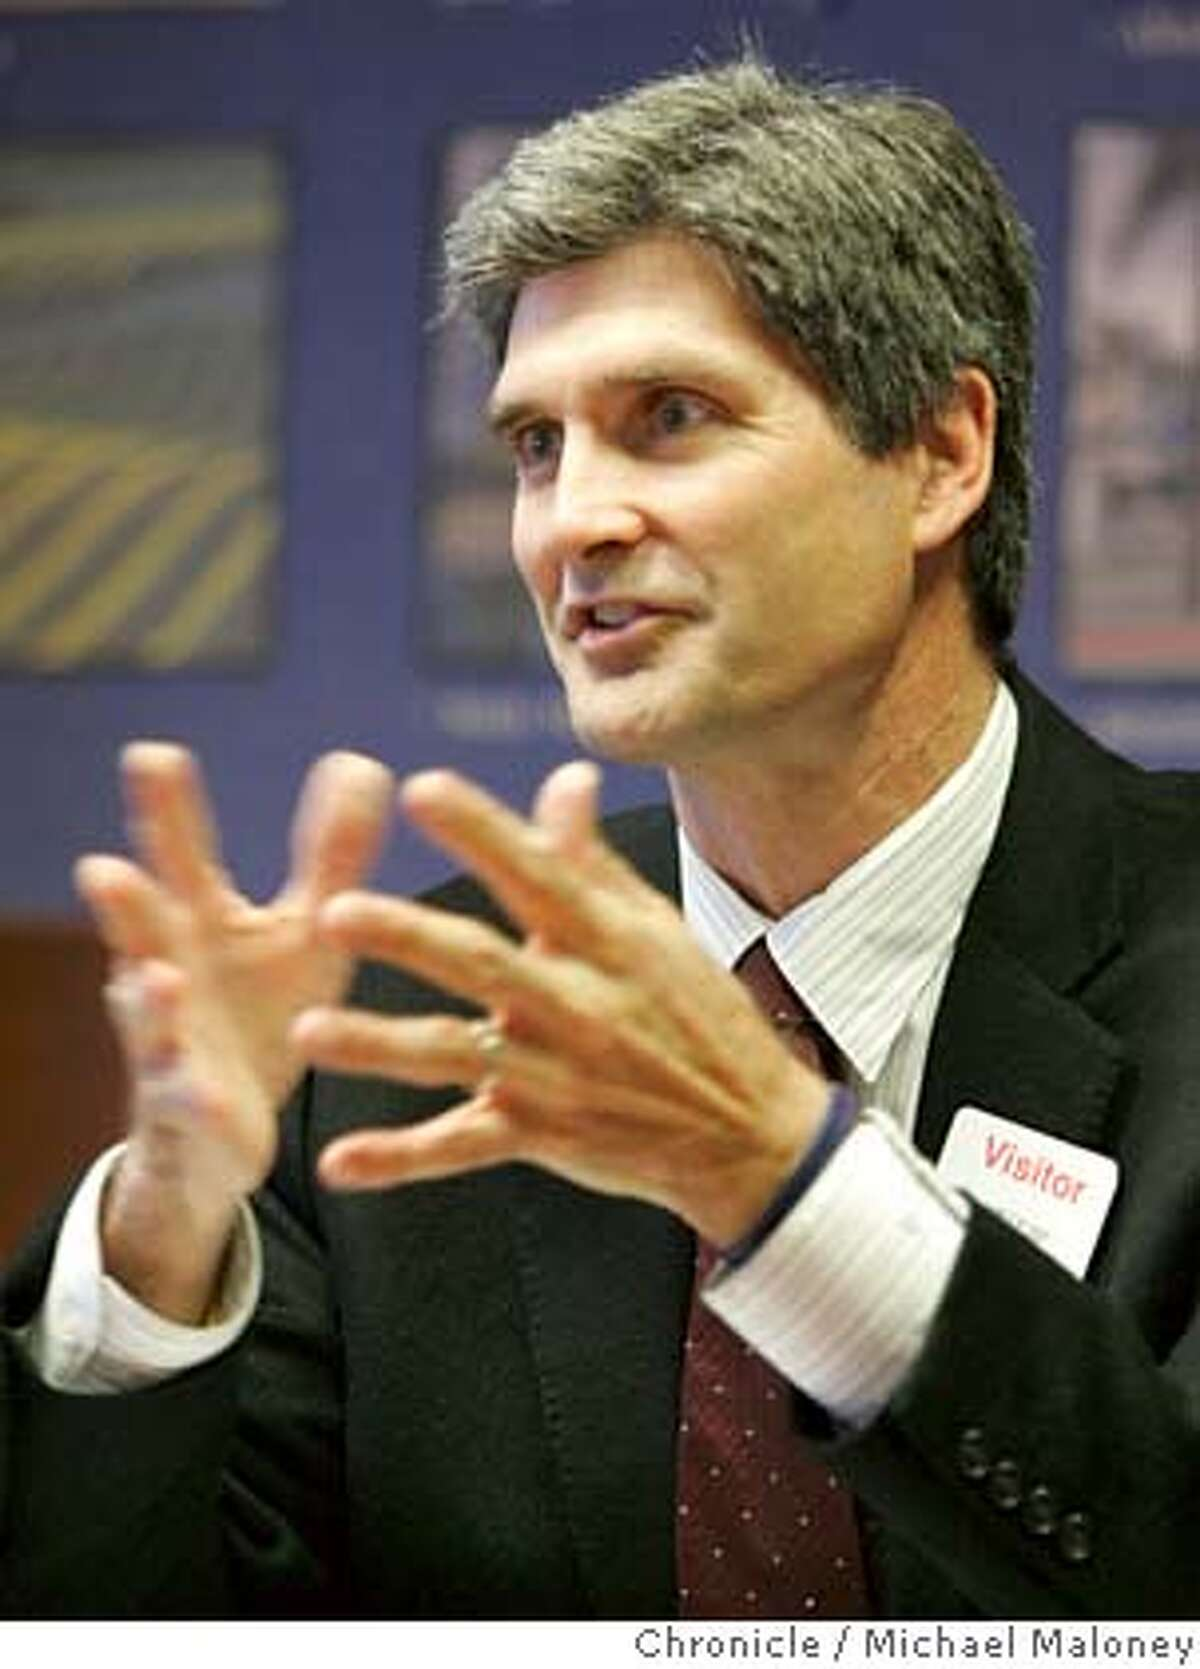 Carl Guardino, president and CEO of the Silicon Valley Leadership Group talks with the Chronicle business reporters at the Chronicle offices on Thursday, April 19, 2007. Photo by Michael Maloney / San Francisco Chronicle *** Carl Guardino Ran on: 05-13-2007 Carl Guardino and San Joses then-mayor, Ron Gonzalez (left), appear at a 2005 legislative meeting in Sacramento. Guardino and legislators often discuss the Silicon Valley Leadership Groups agenda. Ran on: 05-30-2007 Carl Guardino MANDATORY CREDIT FOR PHOTOG AND SF CHRONICLE/NO SALES-MAGS OUT